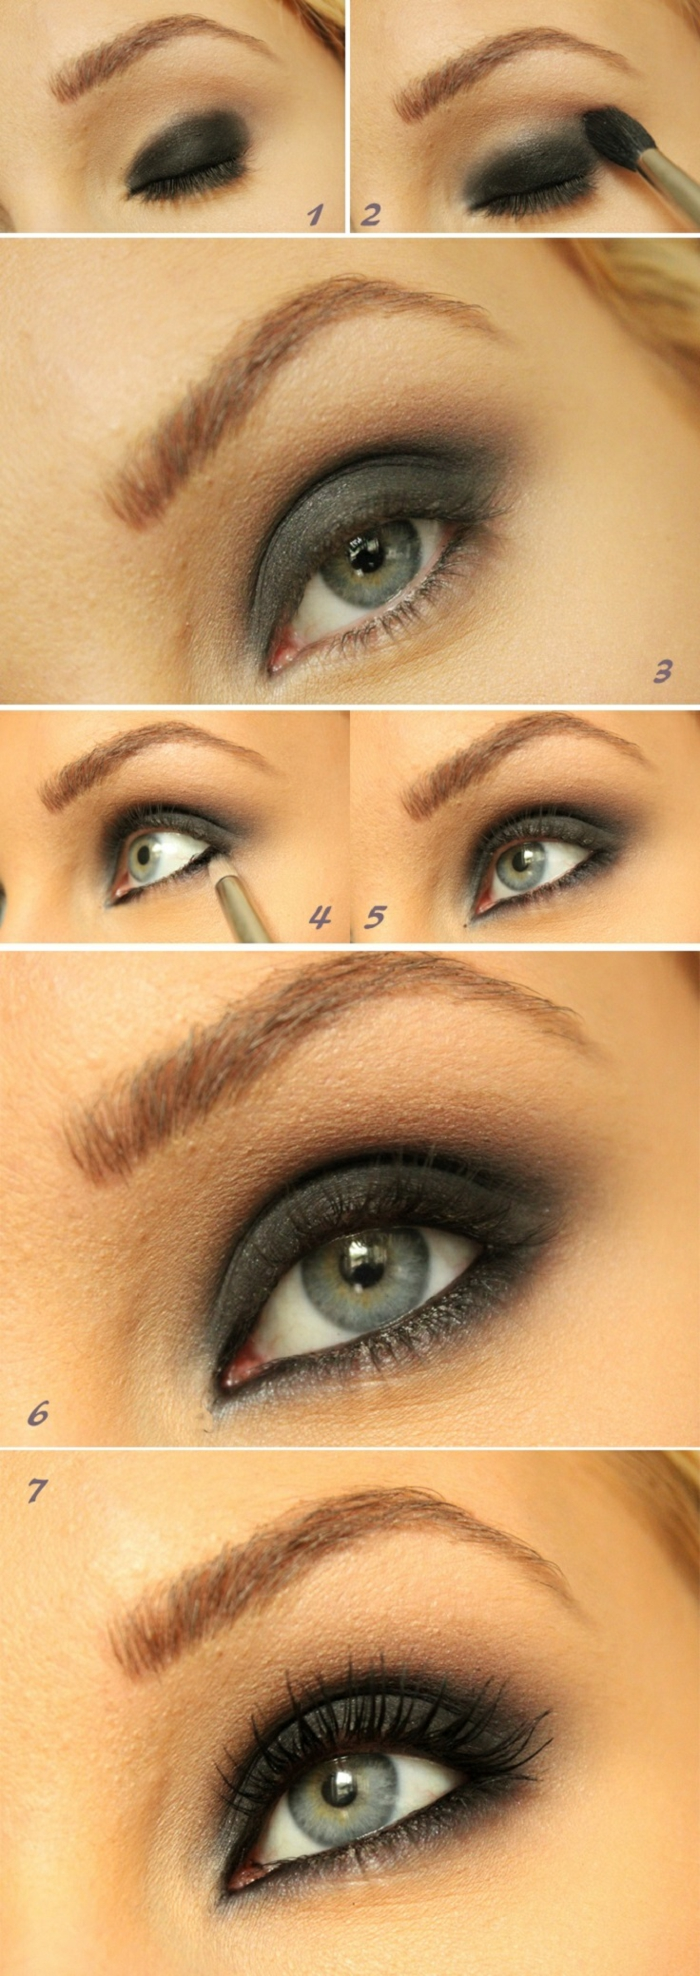 Maquillage orange yeux verts - Maquillage yeux marron vert ...